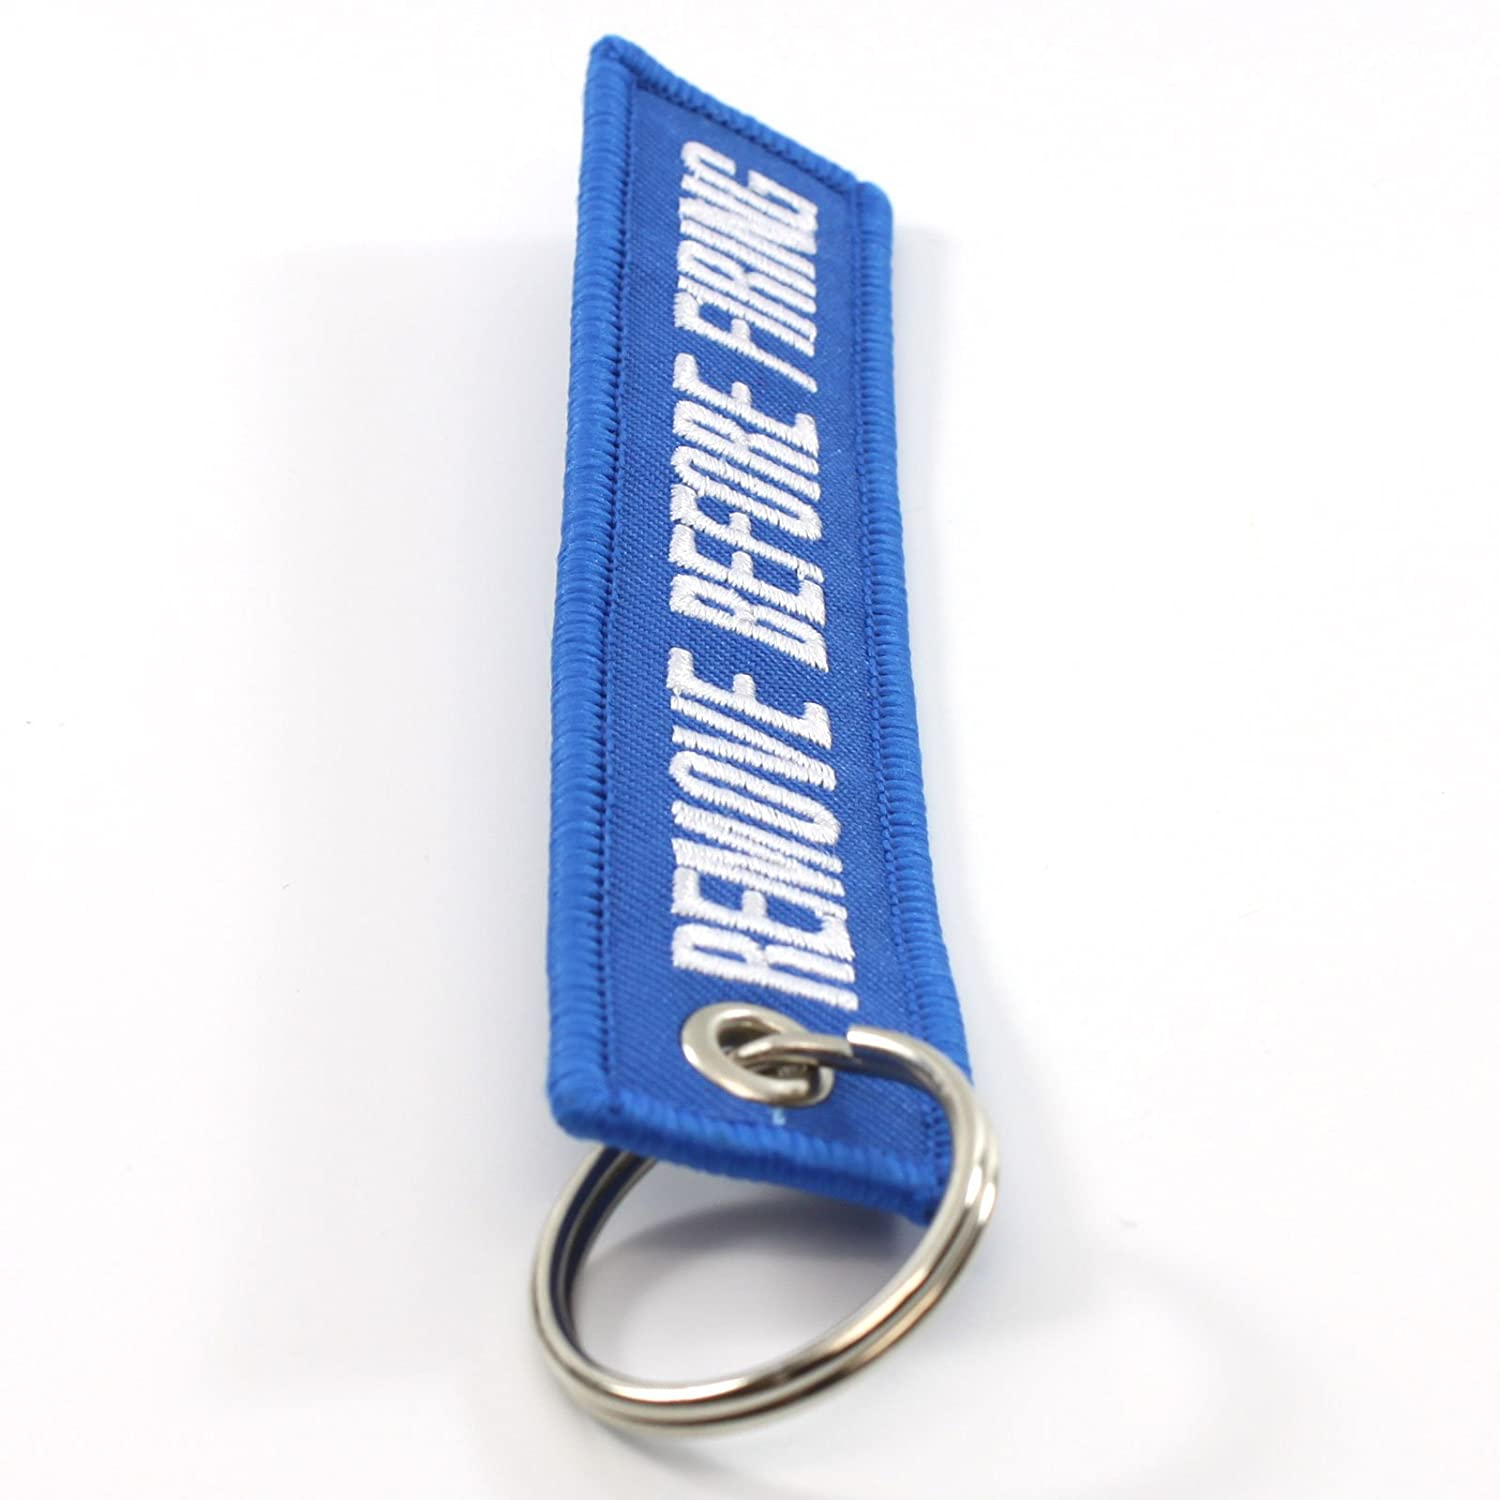 Remove Before Firing Keychain Blue//White by Rotary13B1 RBF1497